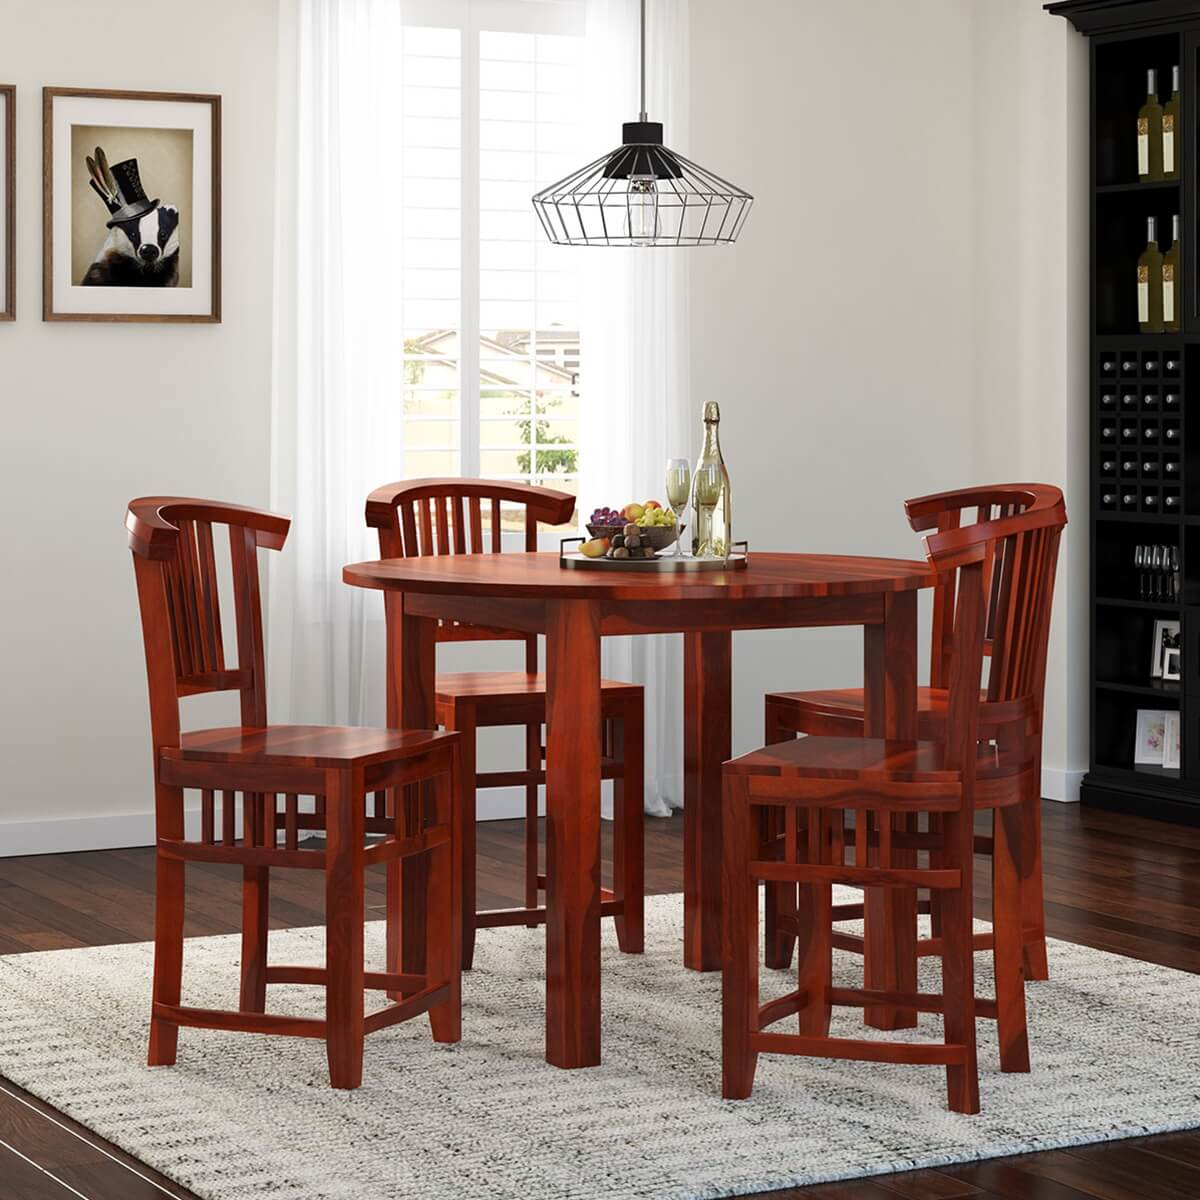 5 pc contemporary counter height dining table and